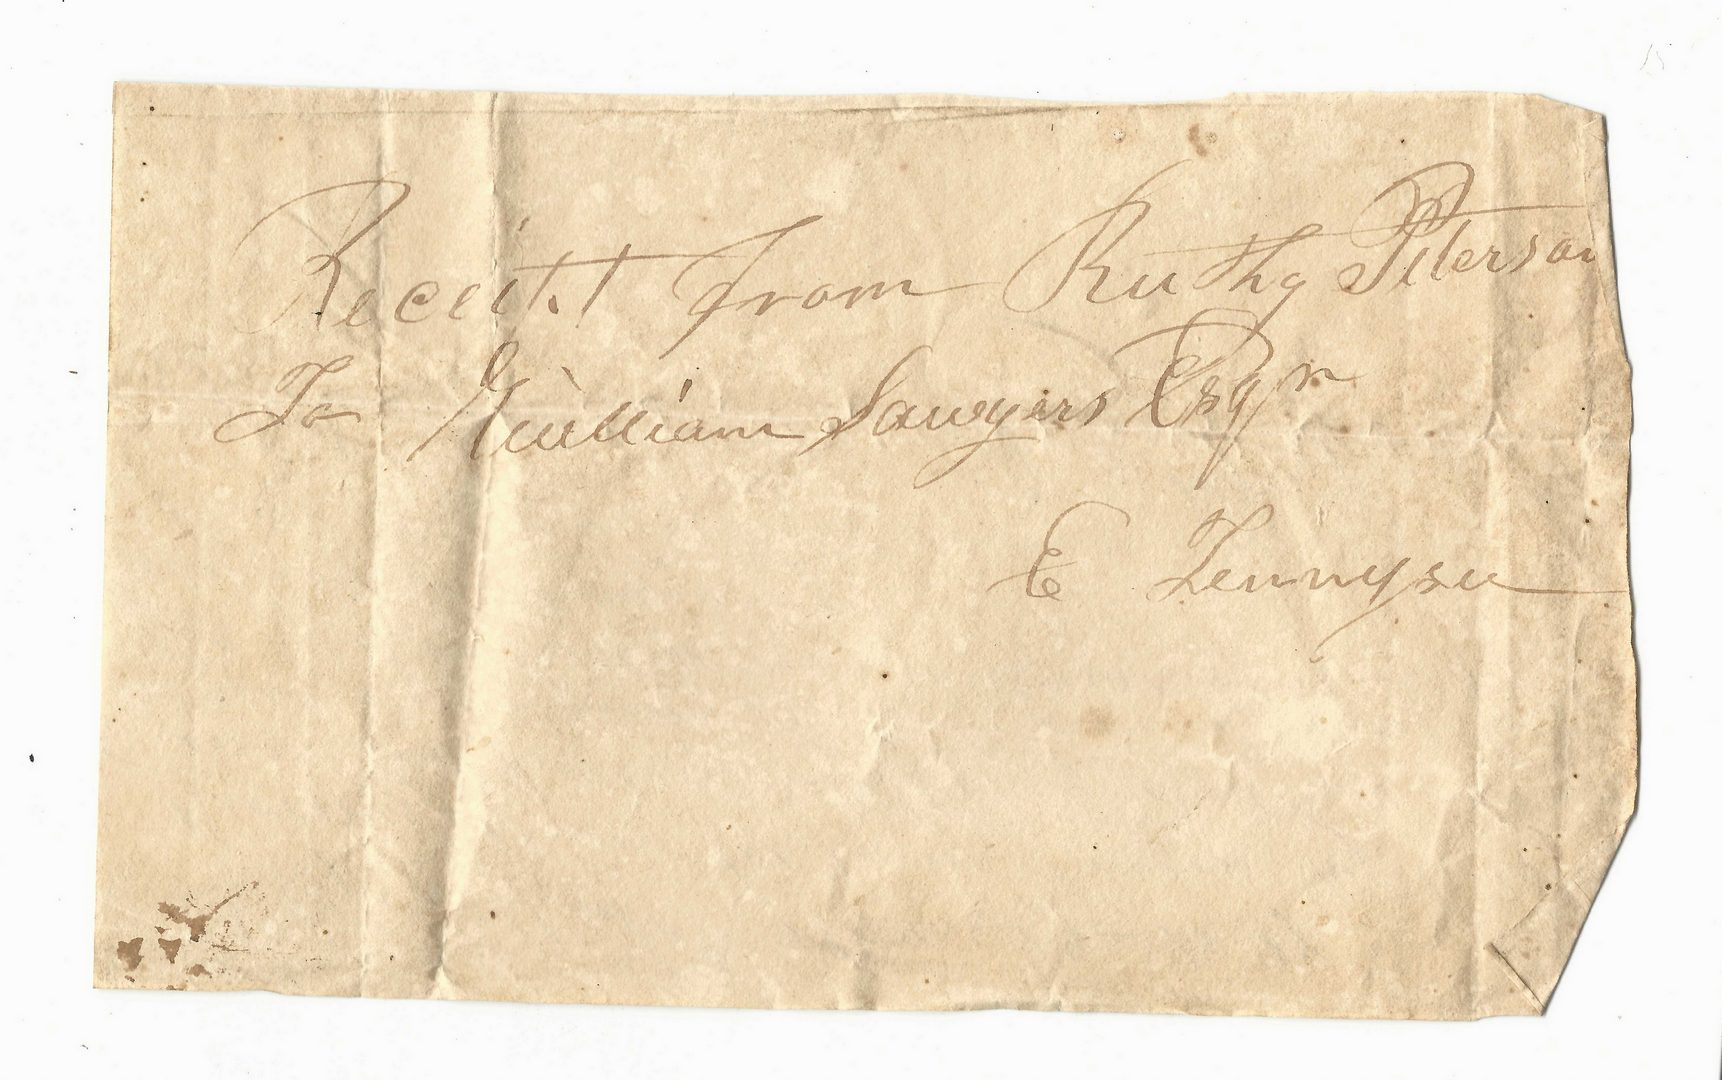 Lot 756: Large Sawyers and McBee Family Archive, 1820-1907, 100 plus items